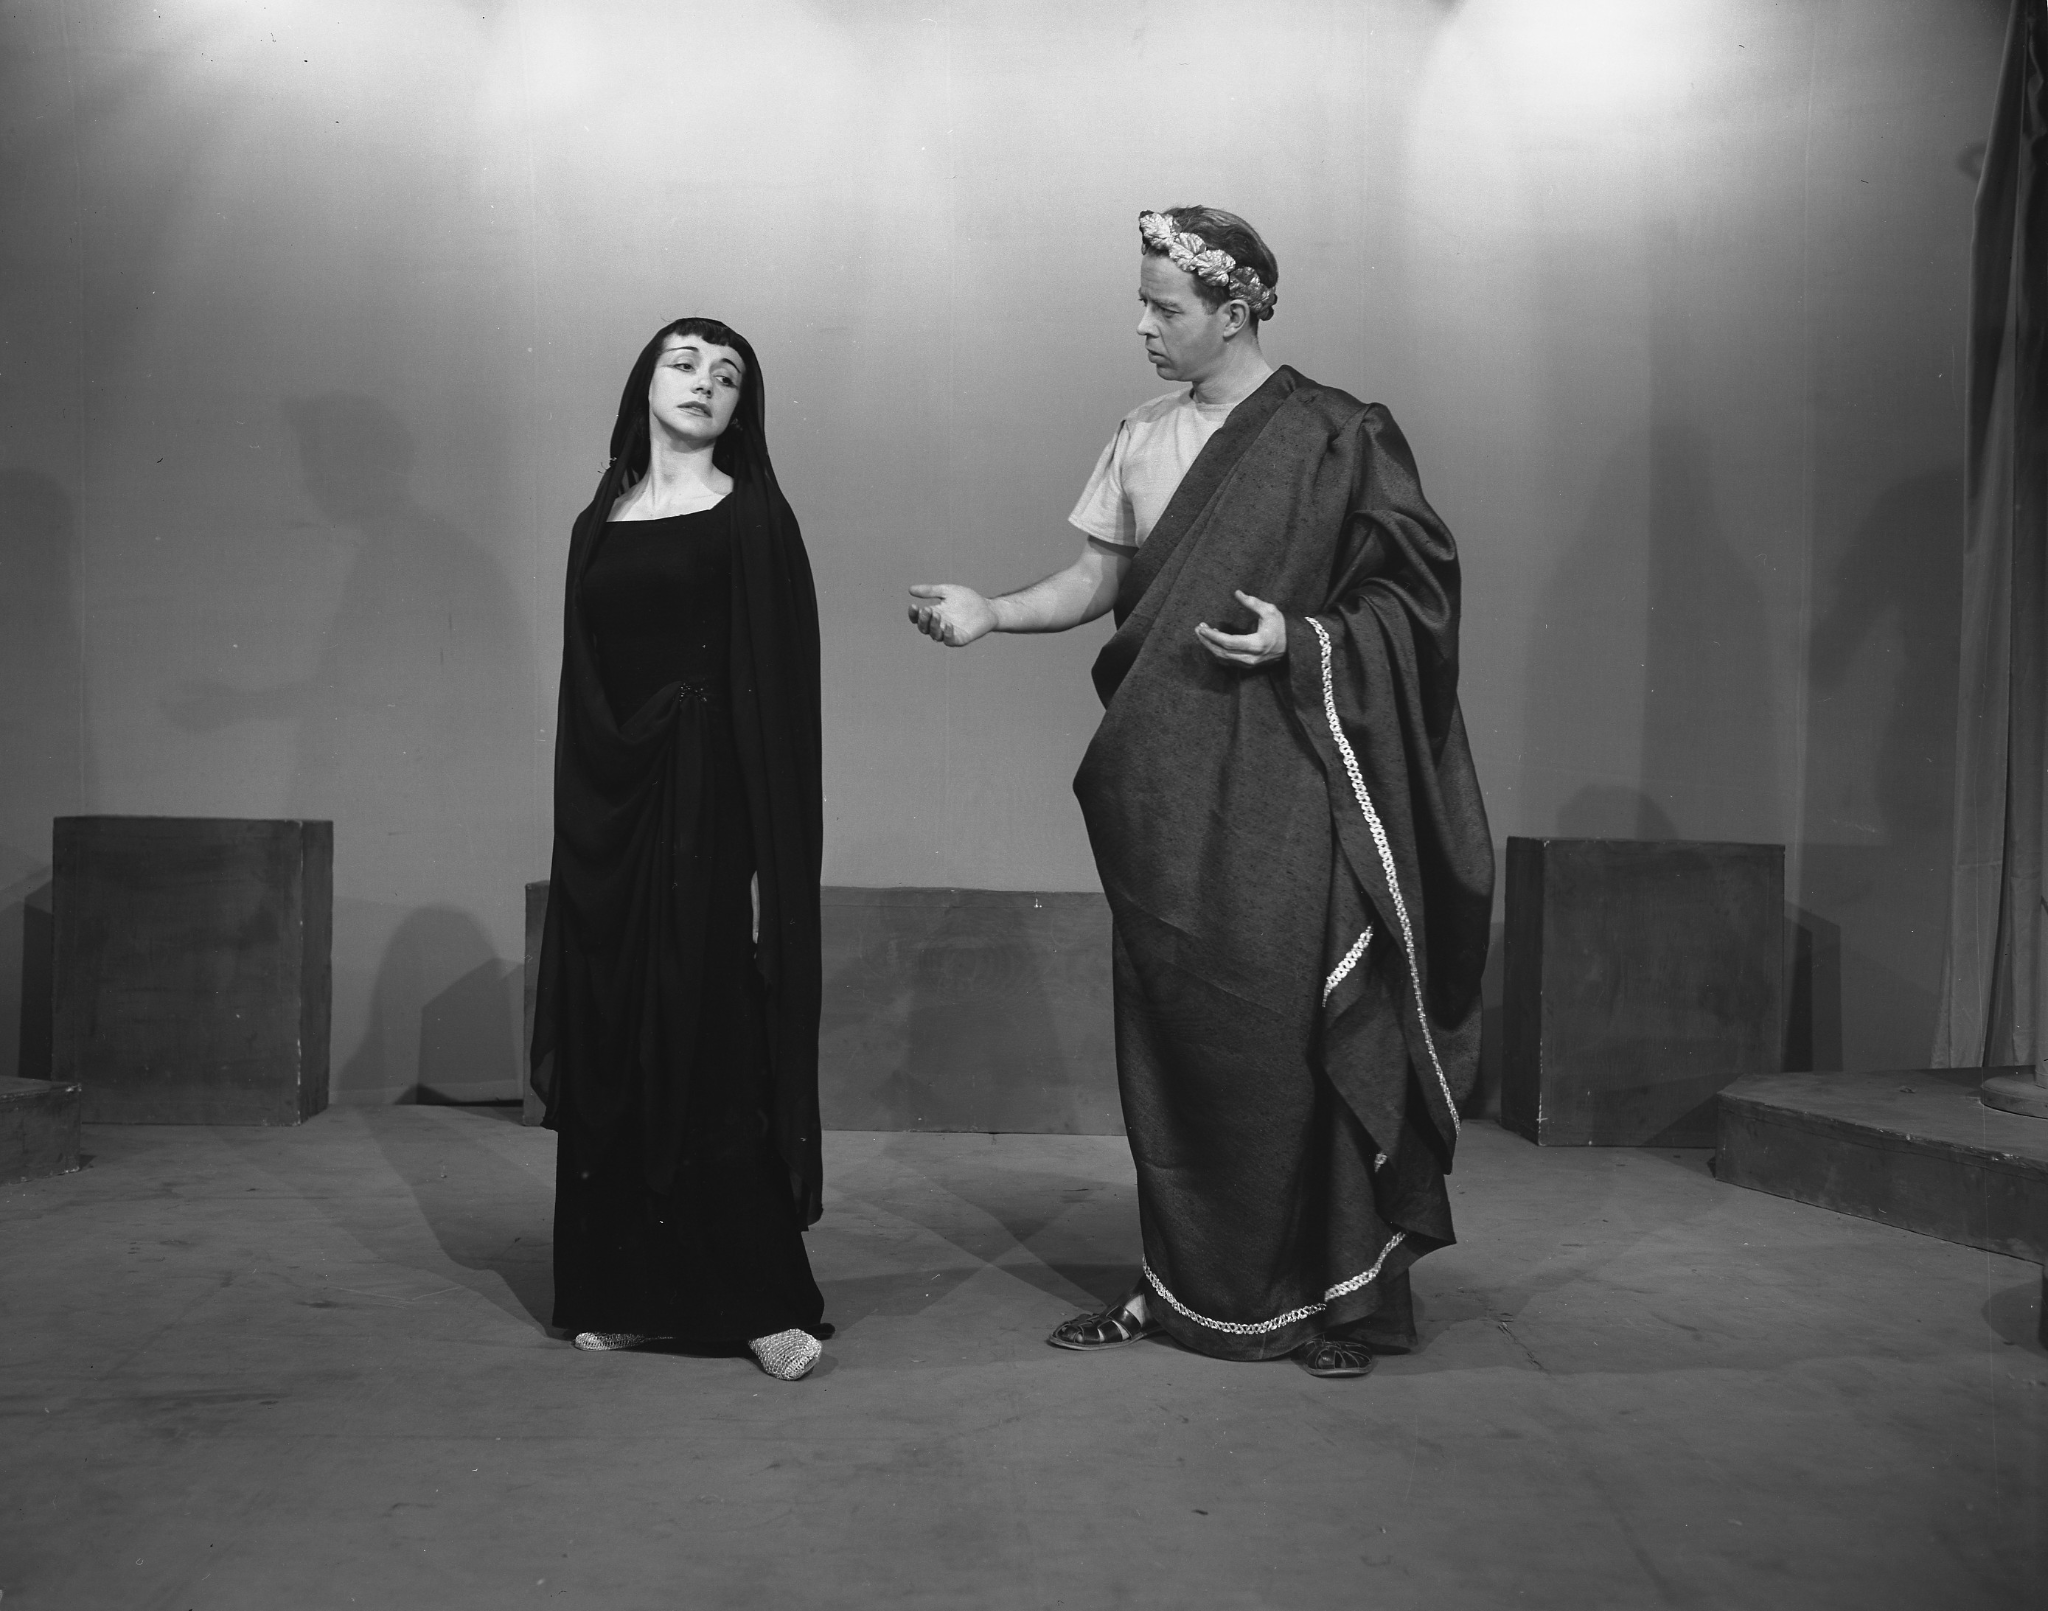 A Caucasian man and woman stand together on stage. The woman wears a long black dress with a black scarf over her hair. She looks over her shoulder as the man speaks to her. He wears a toga and a laurel crown.